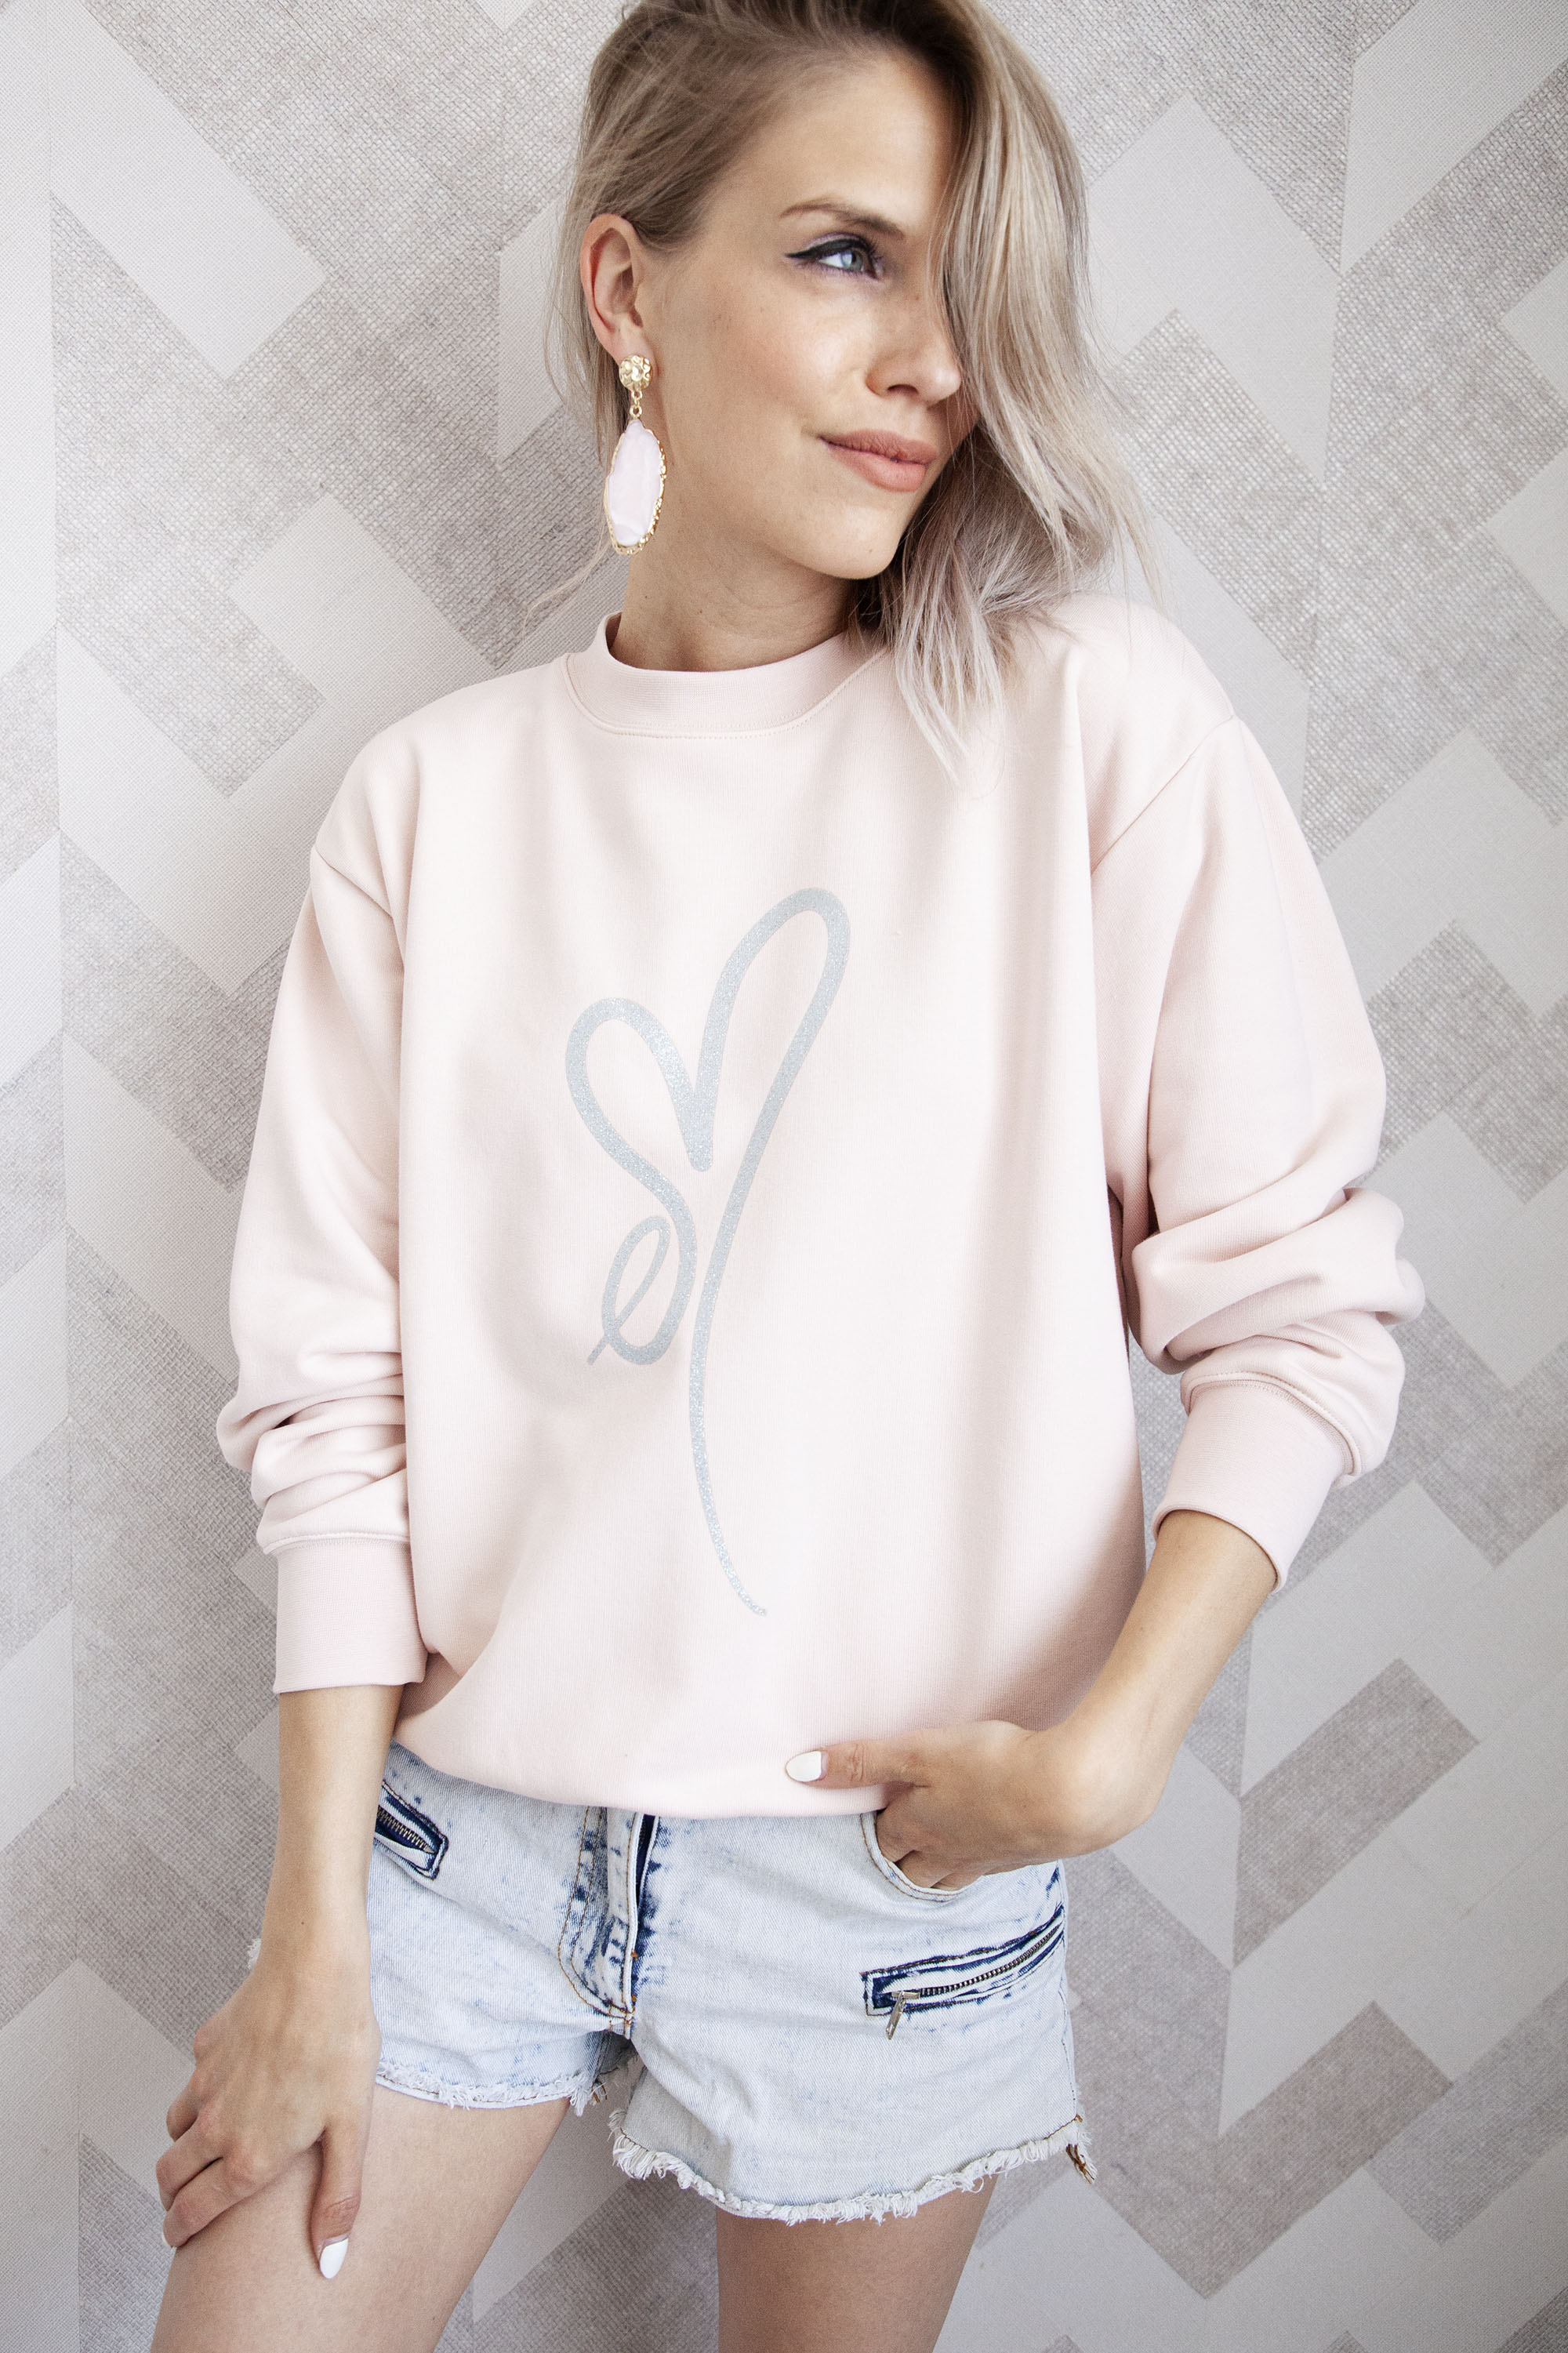 ellemilla ღ ARIA in Pink/Silver Glitter - Sweater